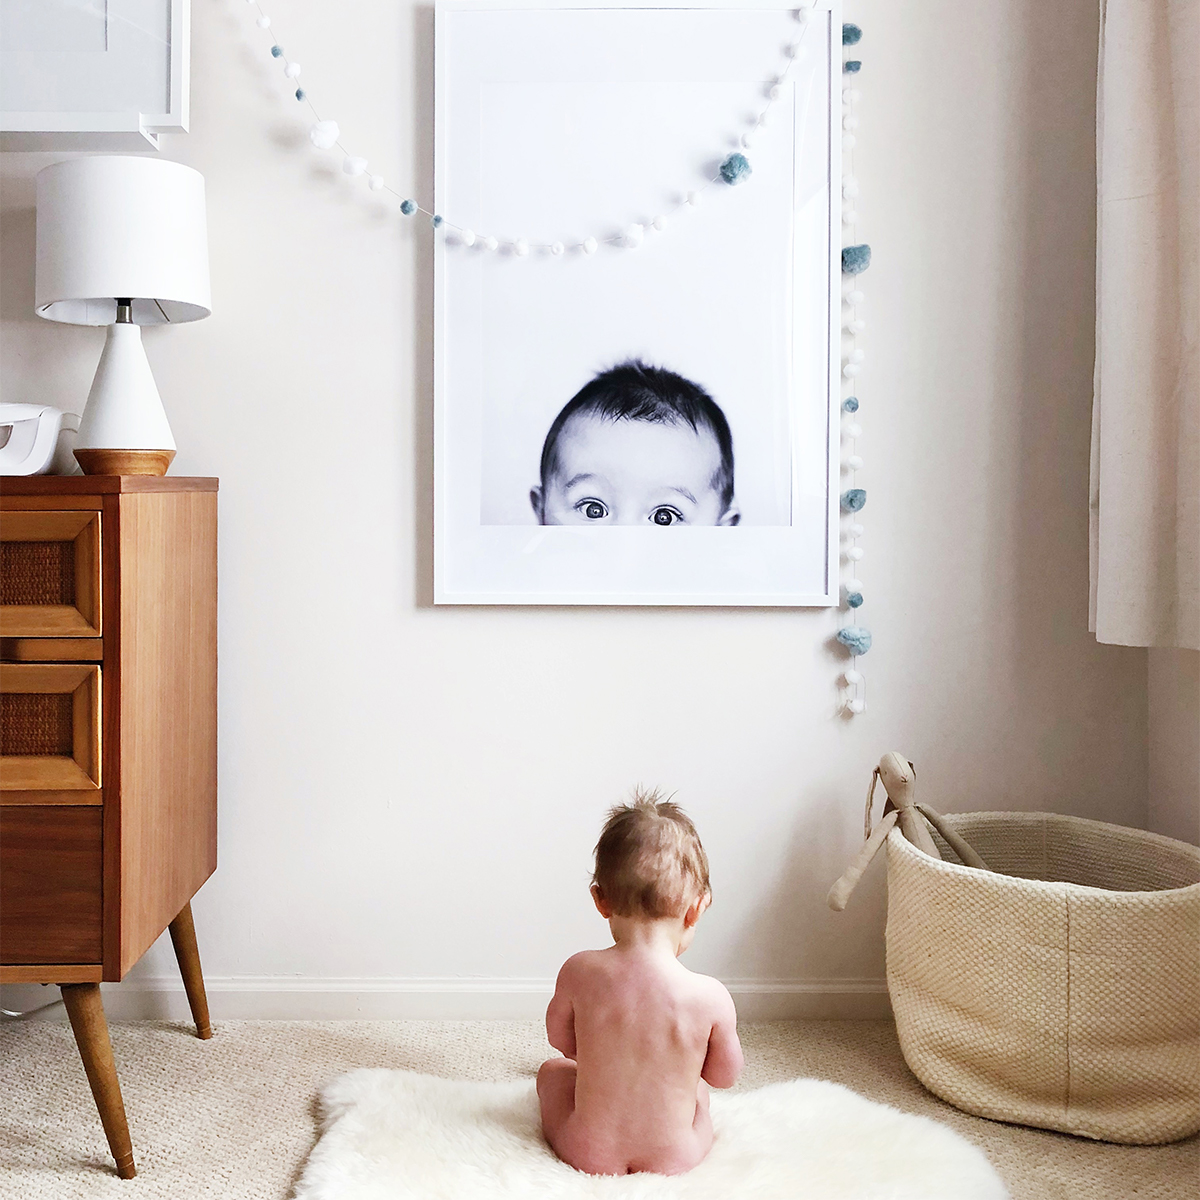 Baby sitting in front of enlarged photo of self on the wall